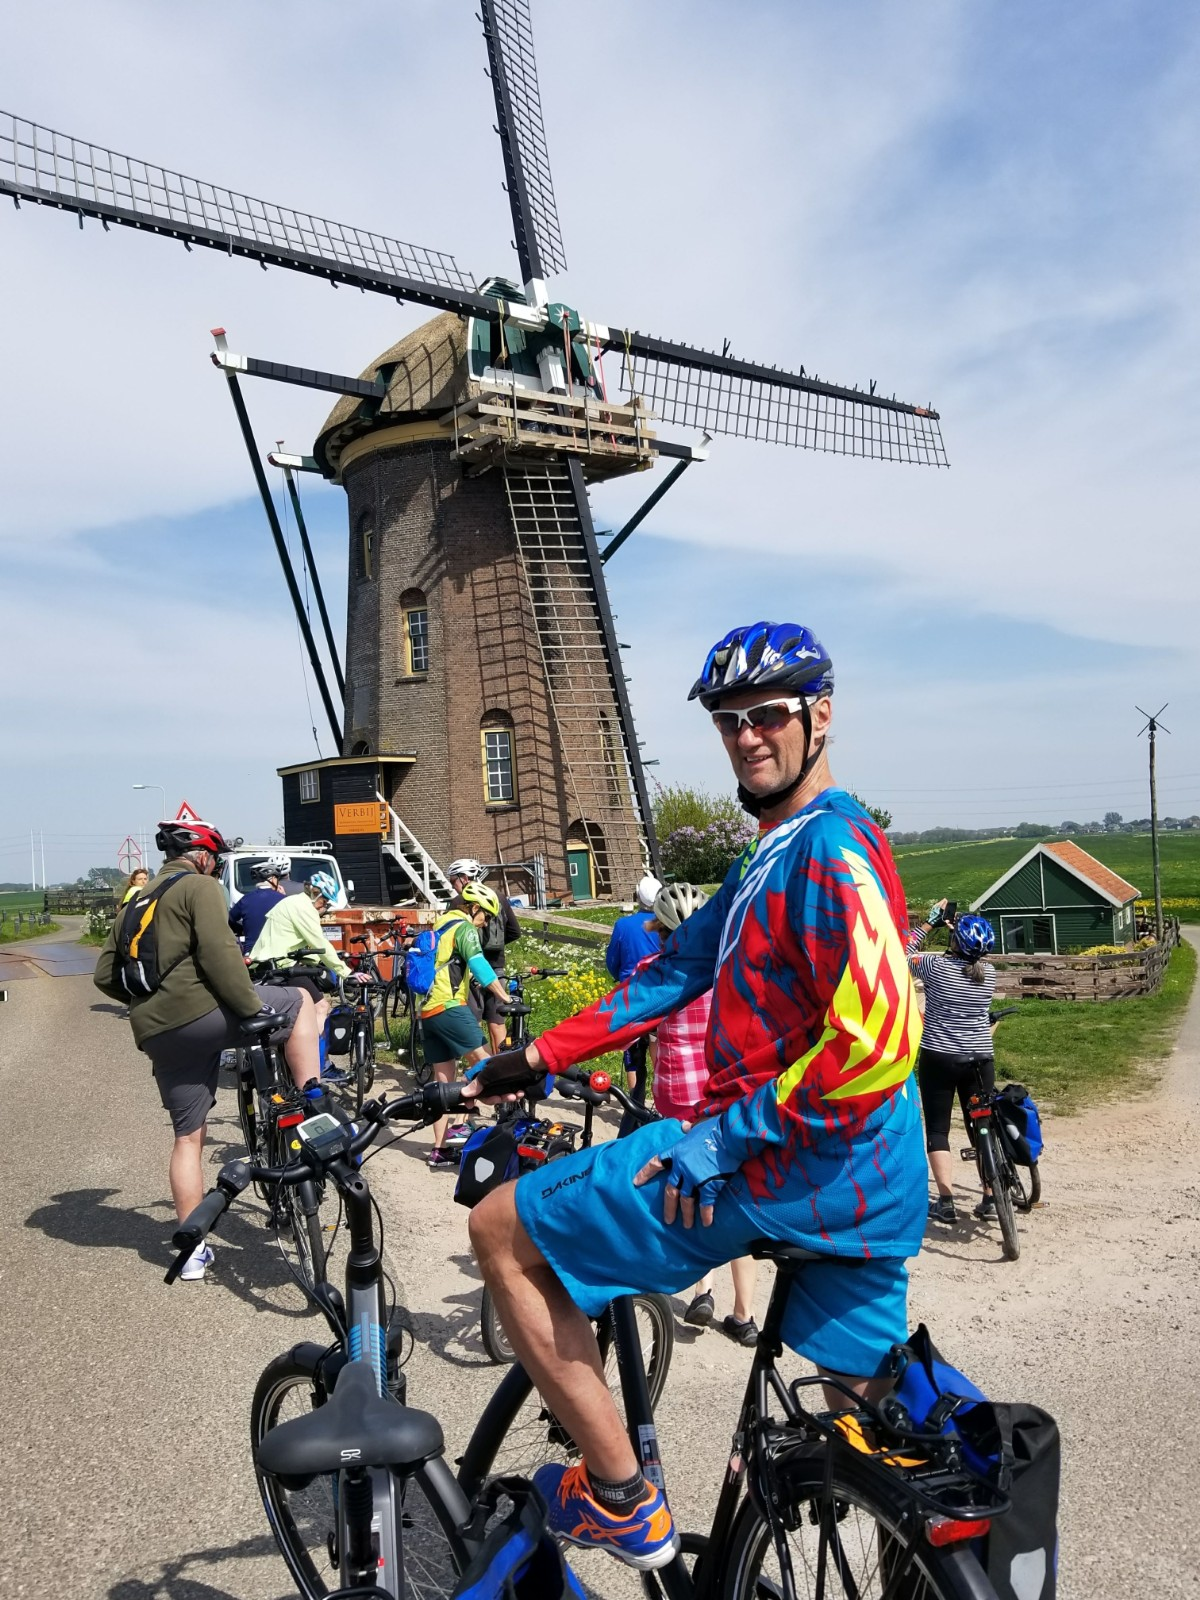 Posing in front of a windmill on our bike tour!